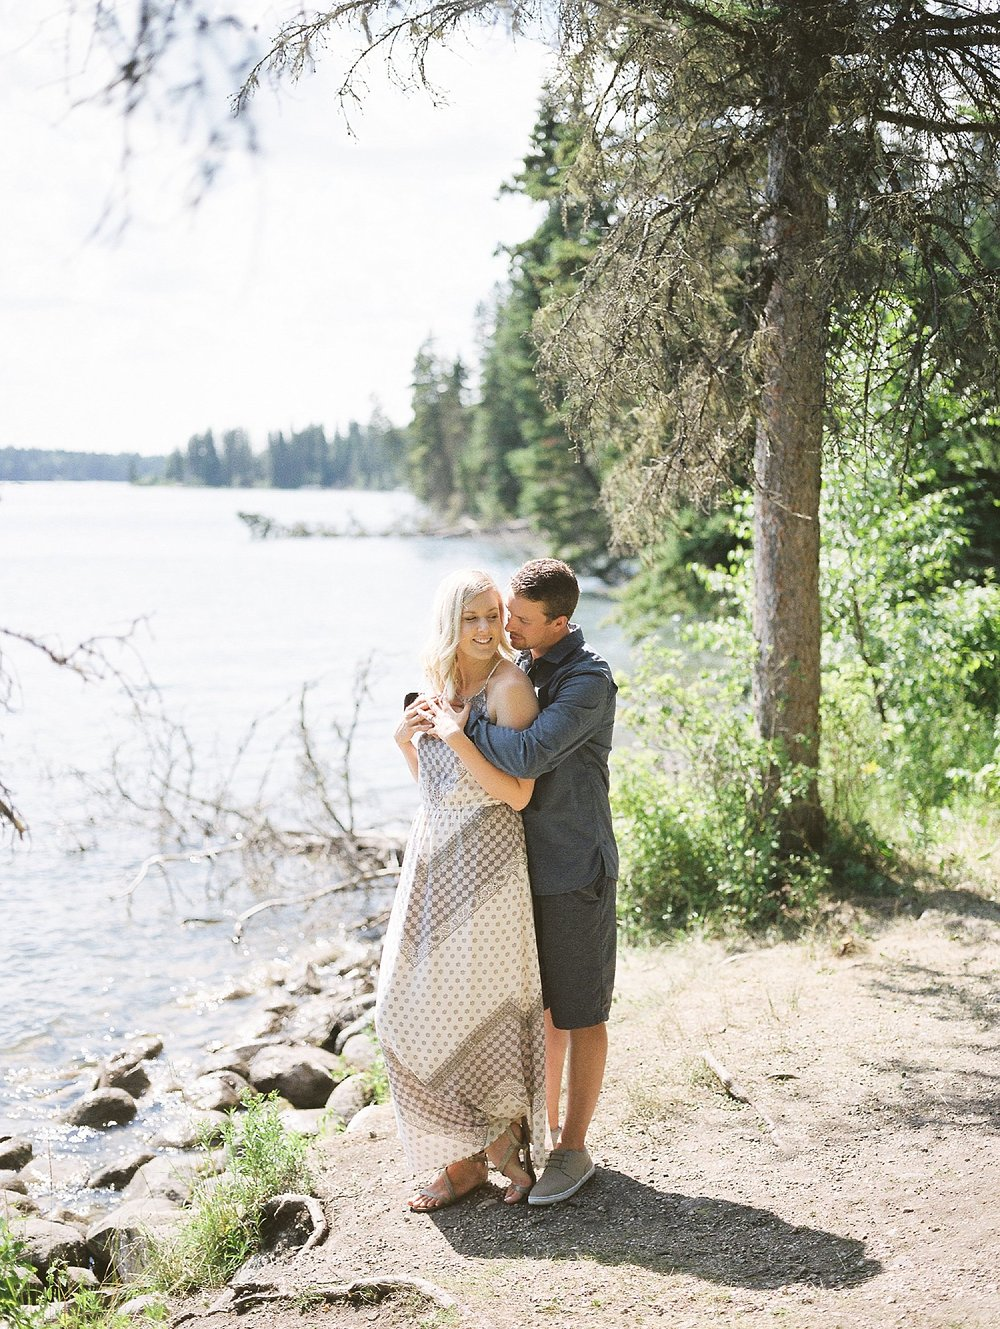 Clear Lake Anniversary Session | Westman Manitoba Wedding Photographer | Riding Mountain National Park Wedding | Adventurous Couples Photoshoot | Keila Marie Photography